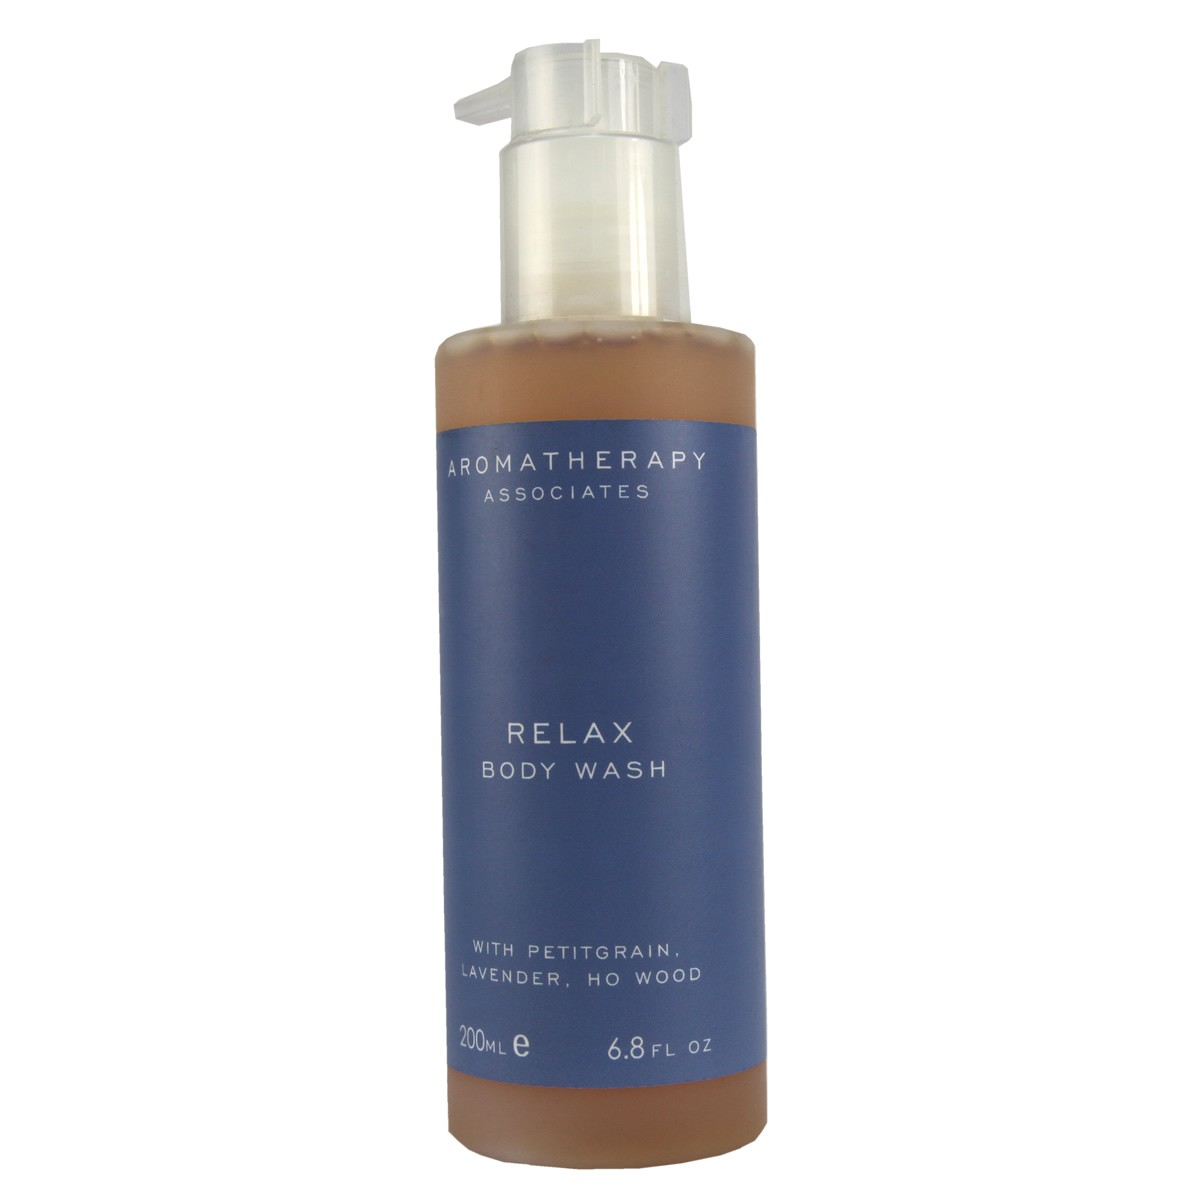 Aromatherapy Associates Relax Body Wash